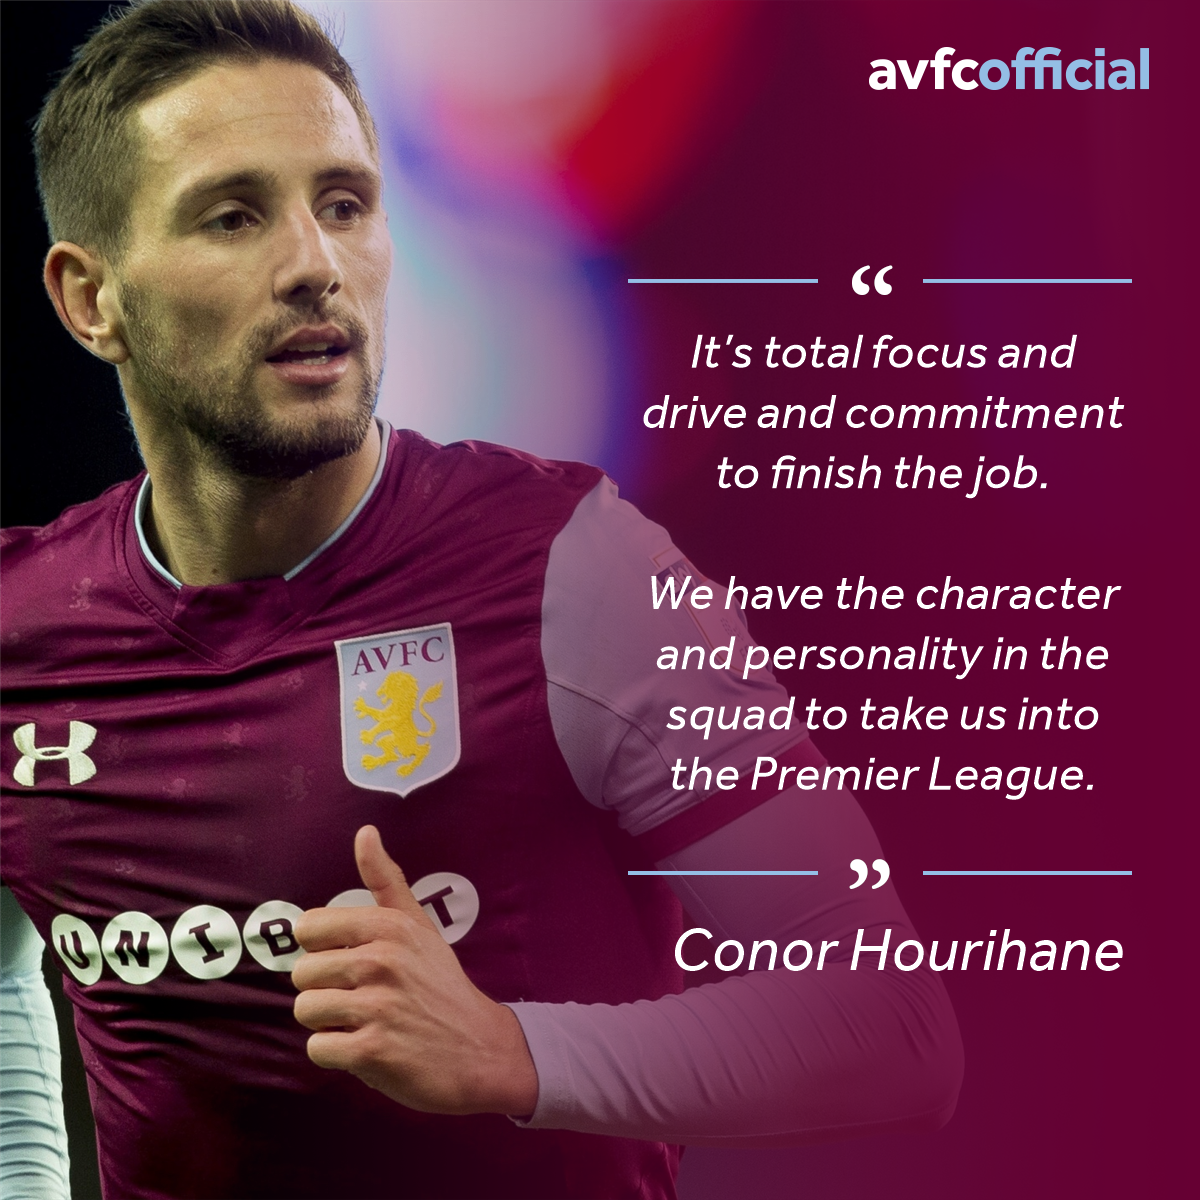 💬👊 @ConorHourihane: I have big faith in this team to deliver when it matters  #PartOfThePride #AVFC